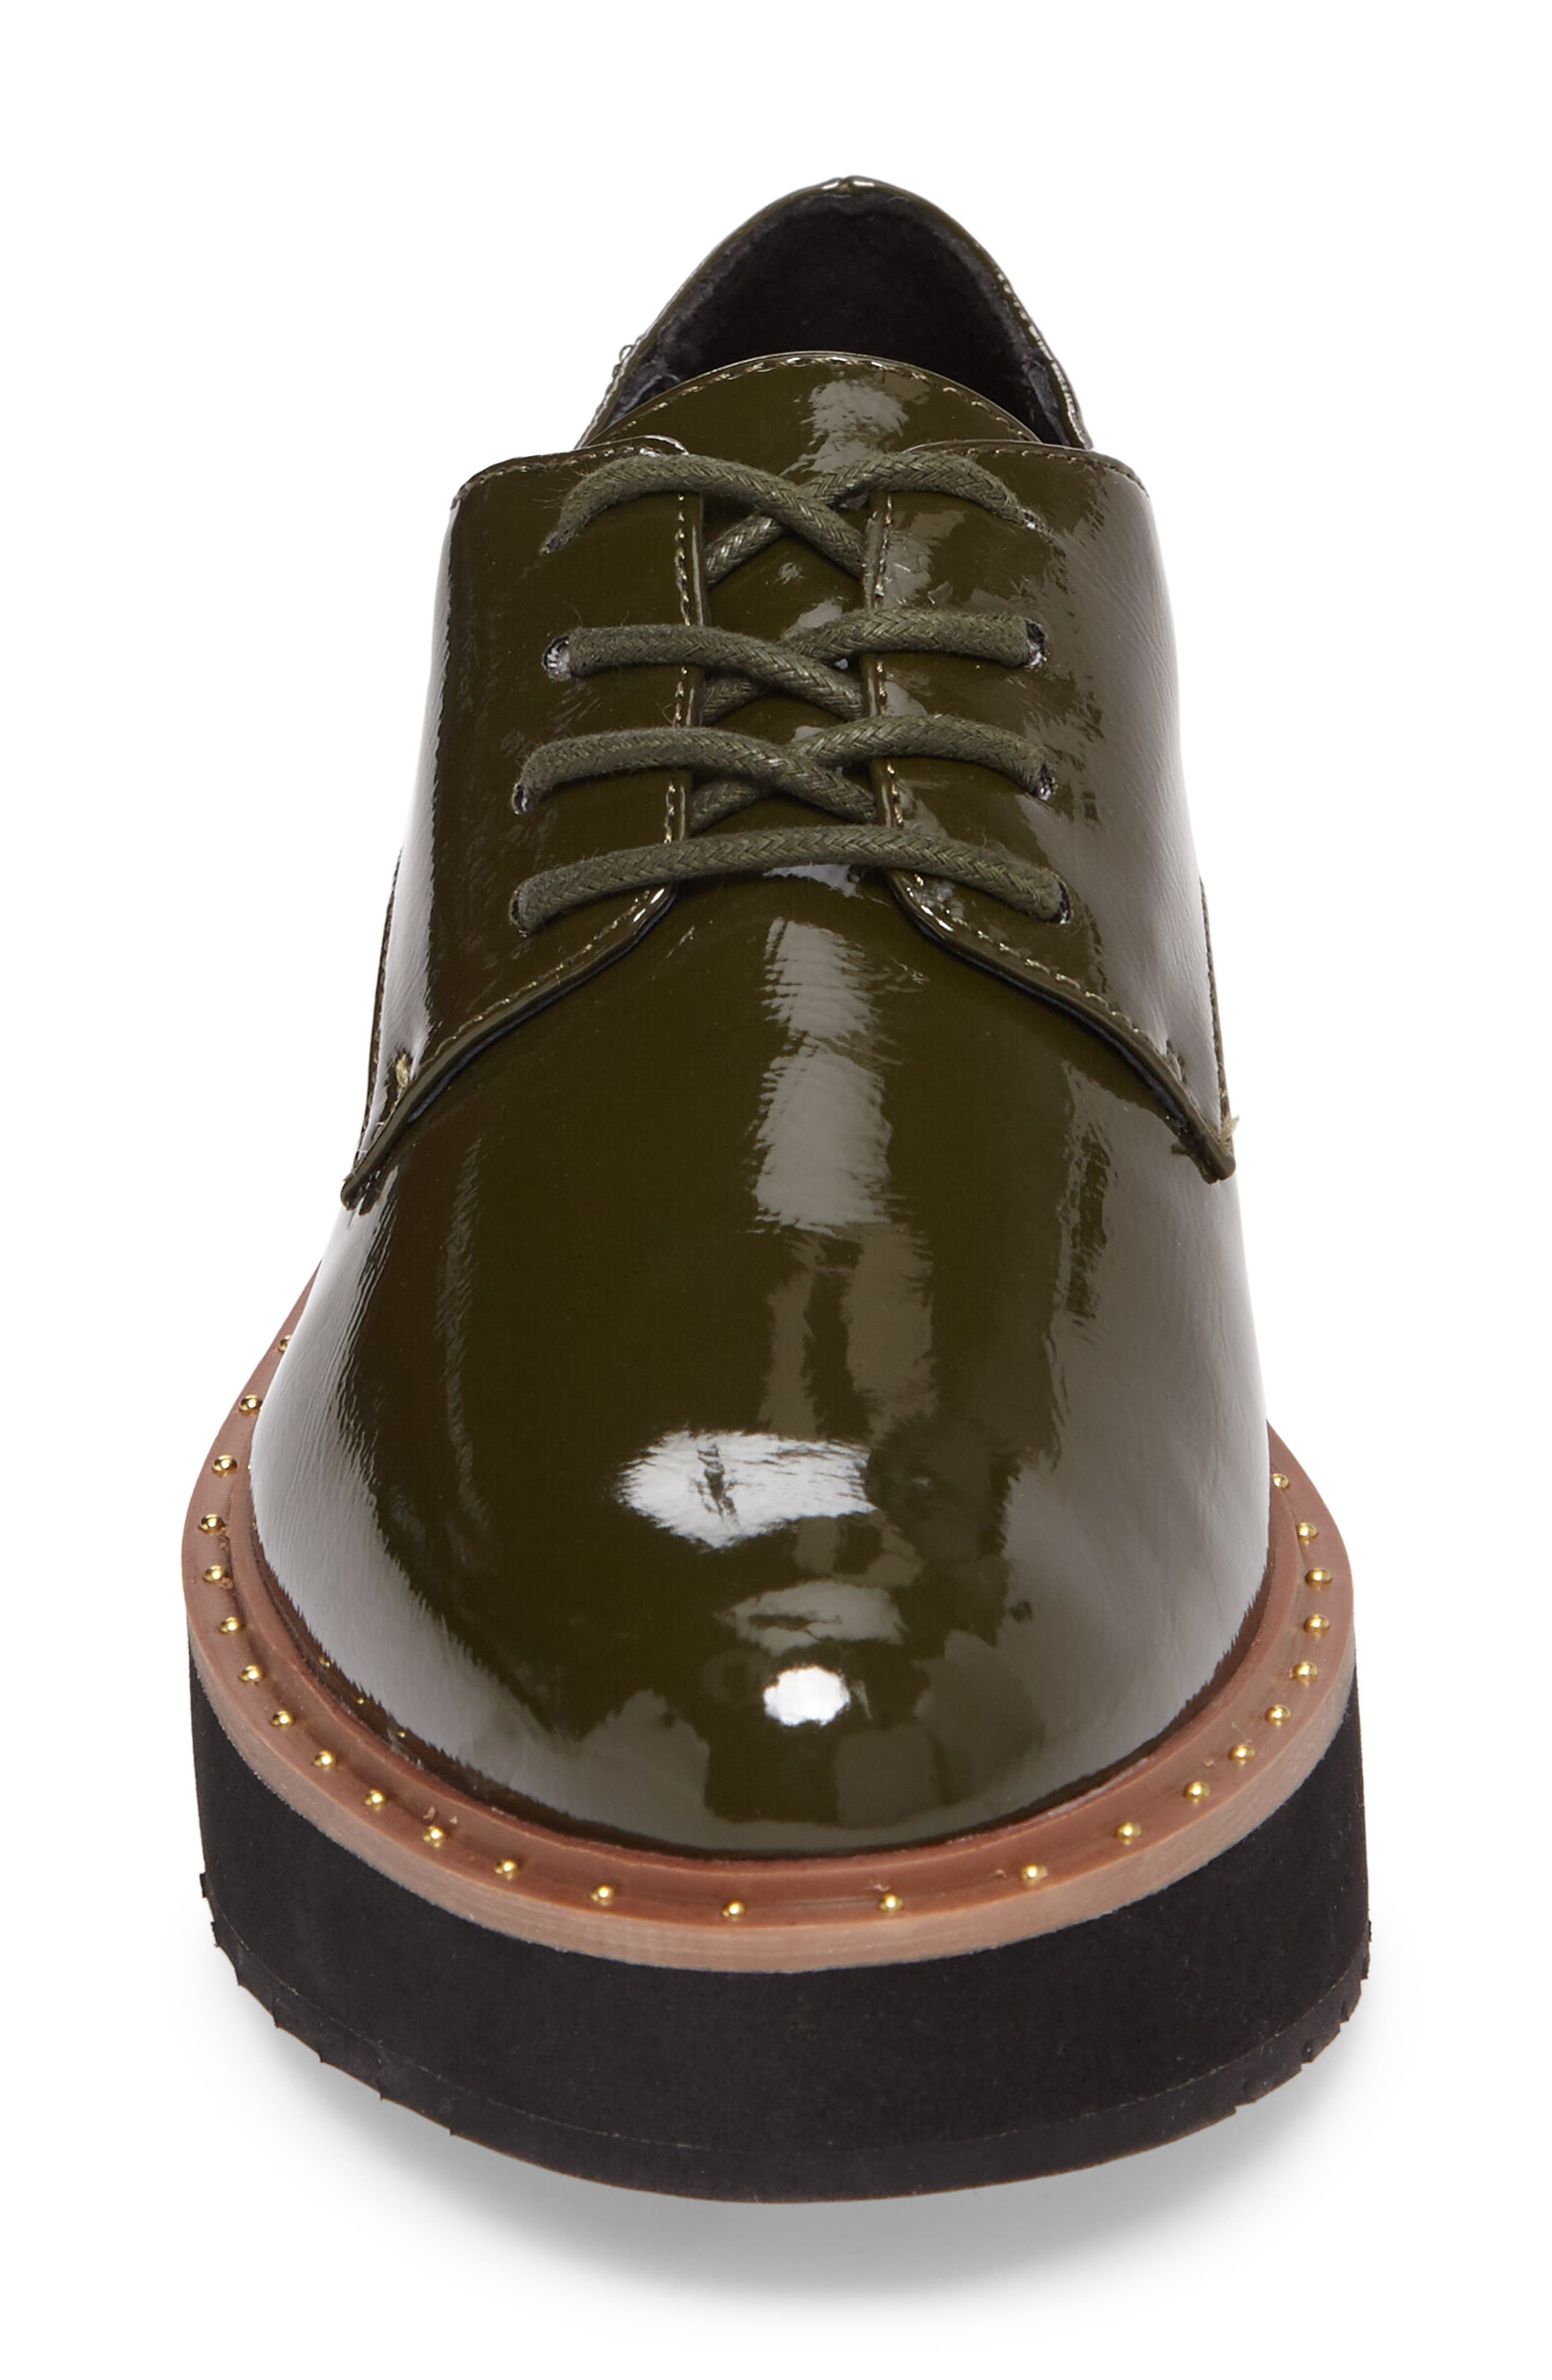 CHINESE LAUNDRY, Cecilia Platform Oxford, Alternate thumbnail 4, color, OLIVE